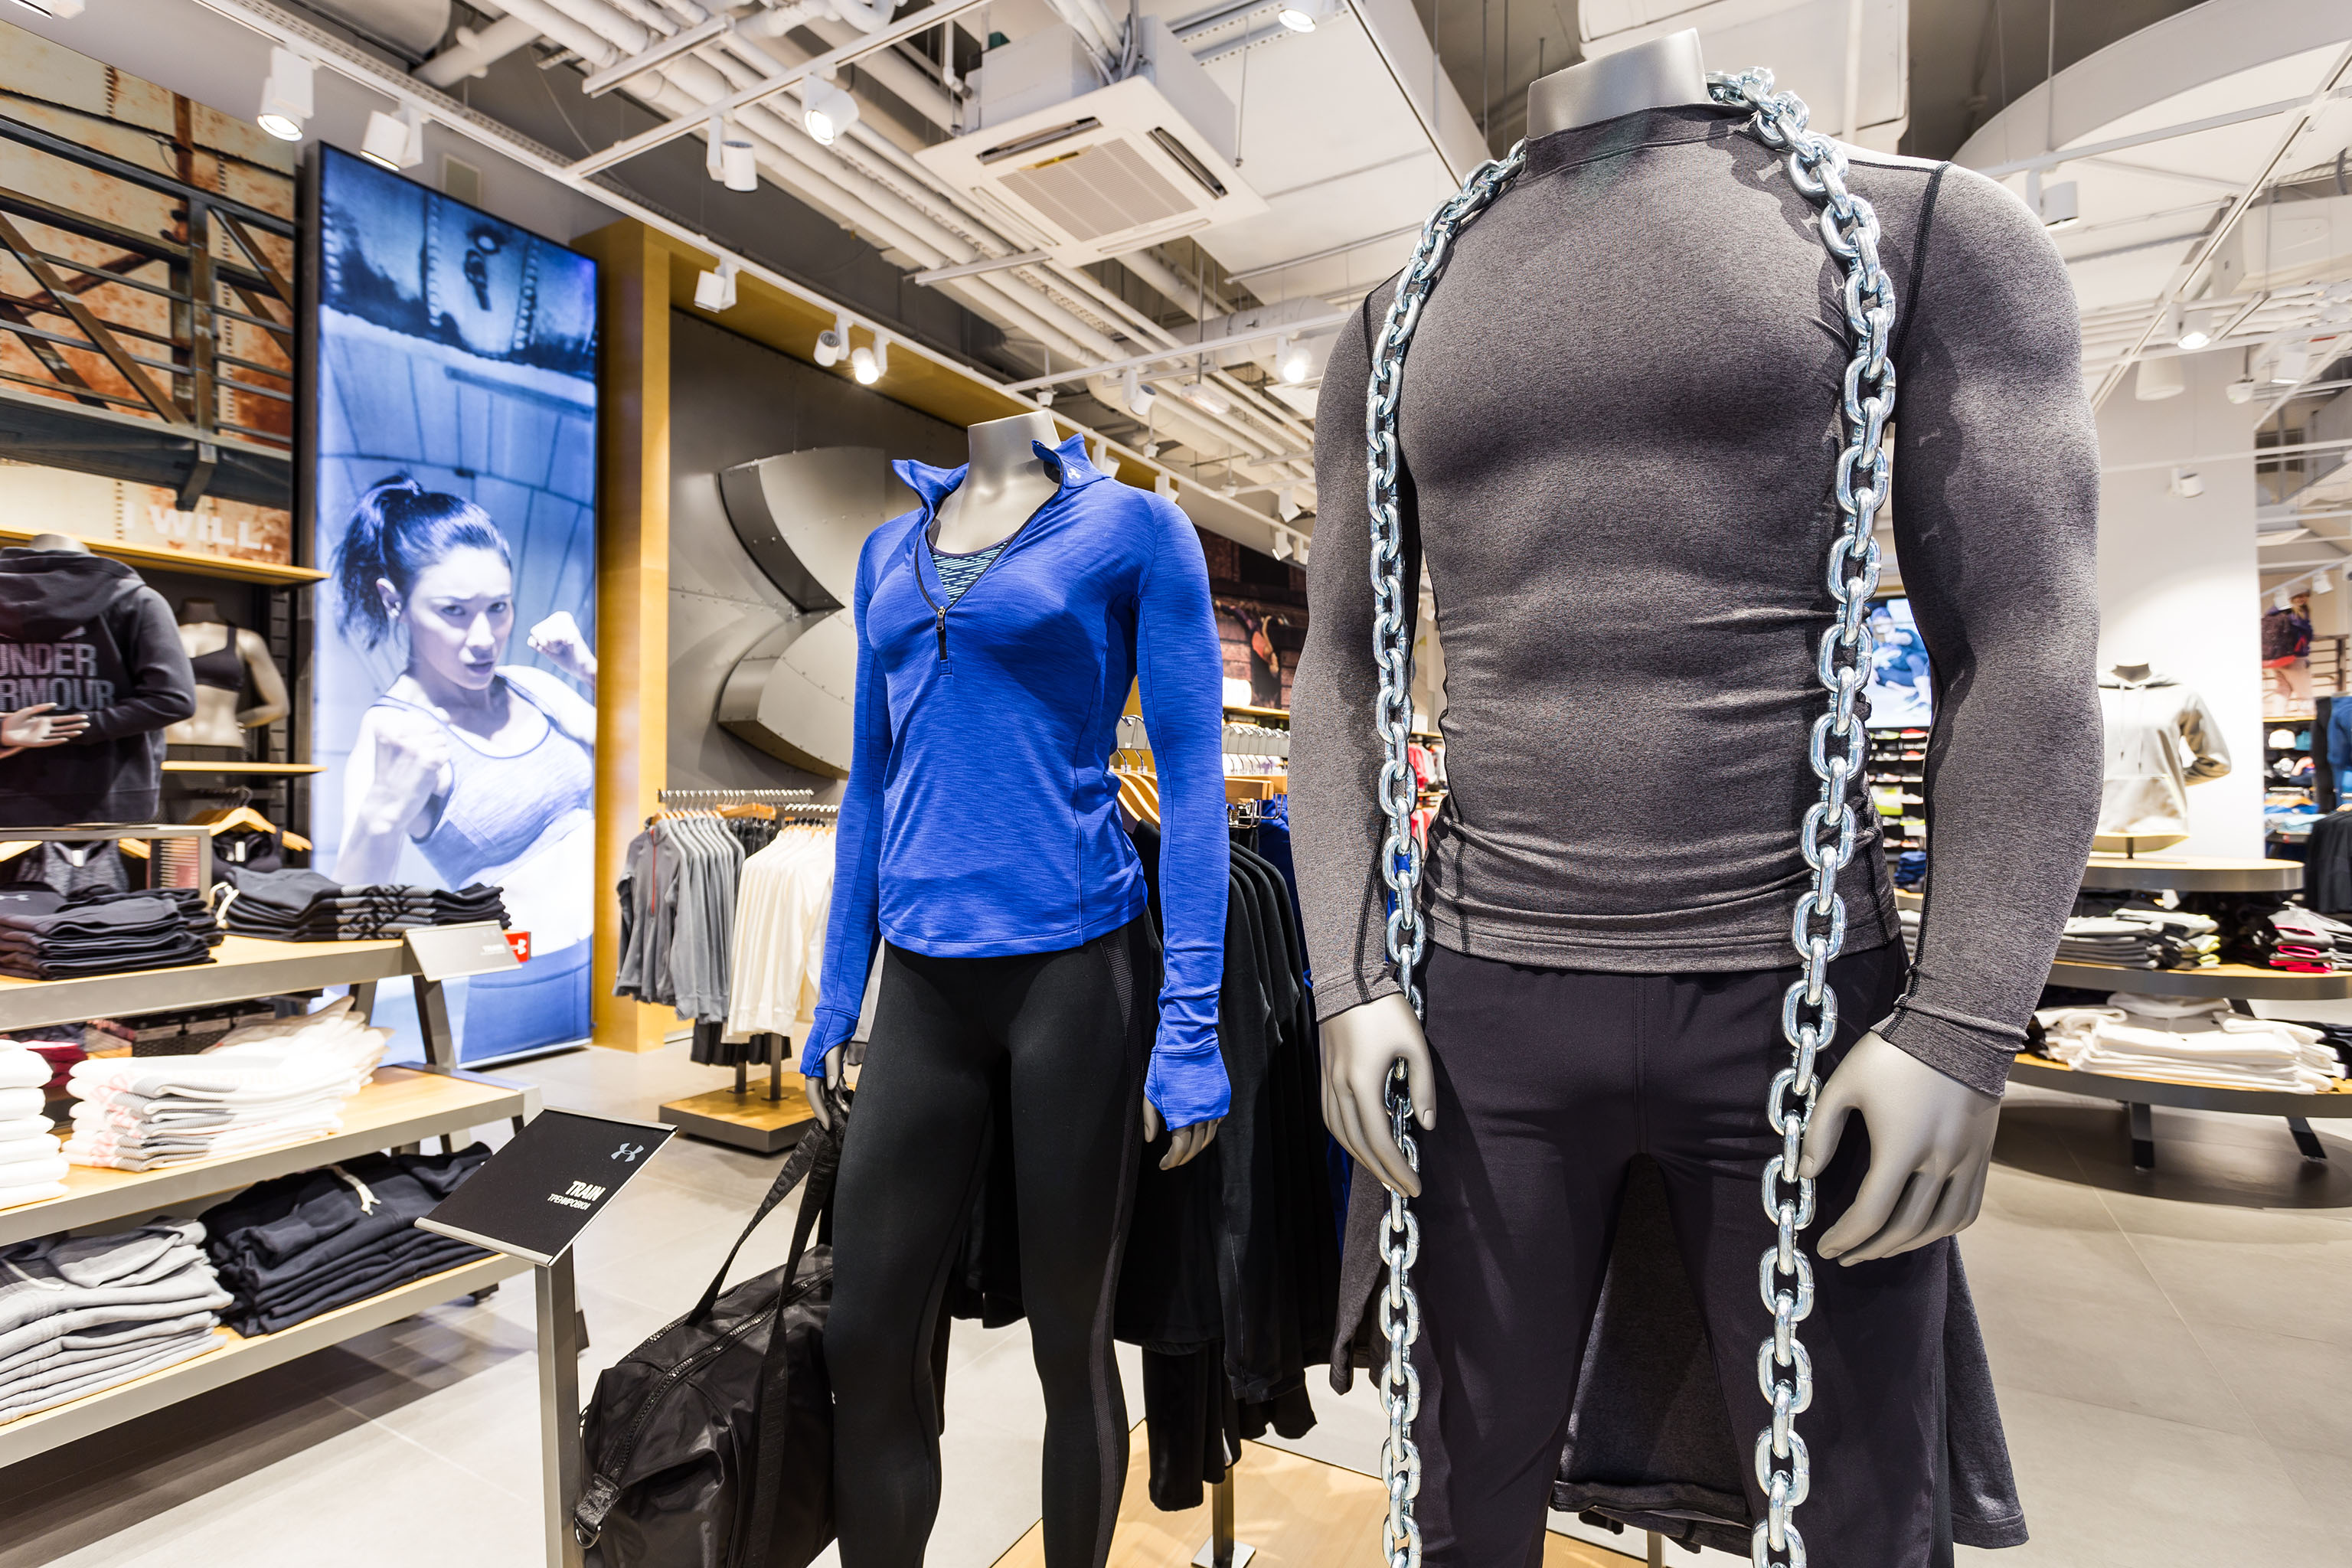 The Under Armour store in Moscow